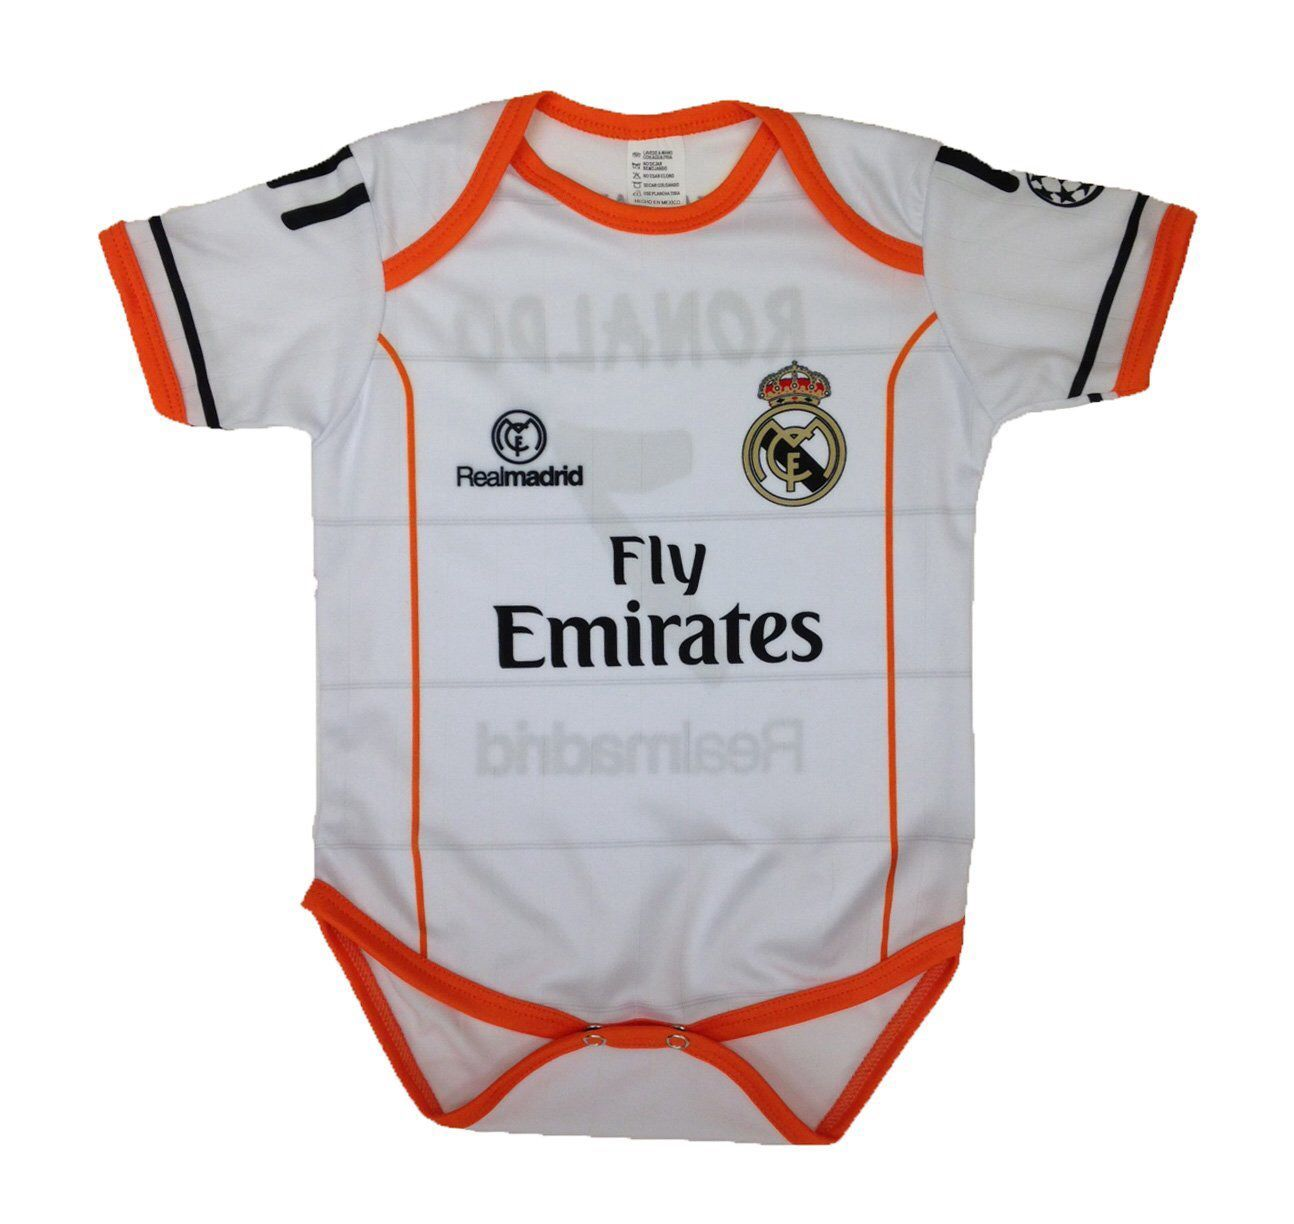 42ee21e46 Just bought this Real Madrid onesie for friends who recently had a baby.  Oh, how wonderful to be born during La Decima